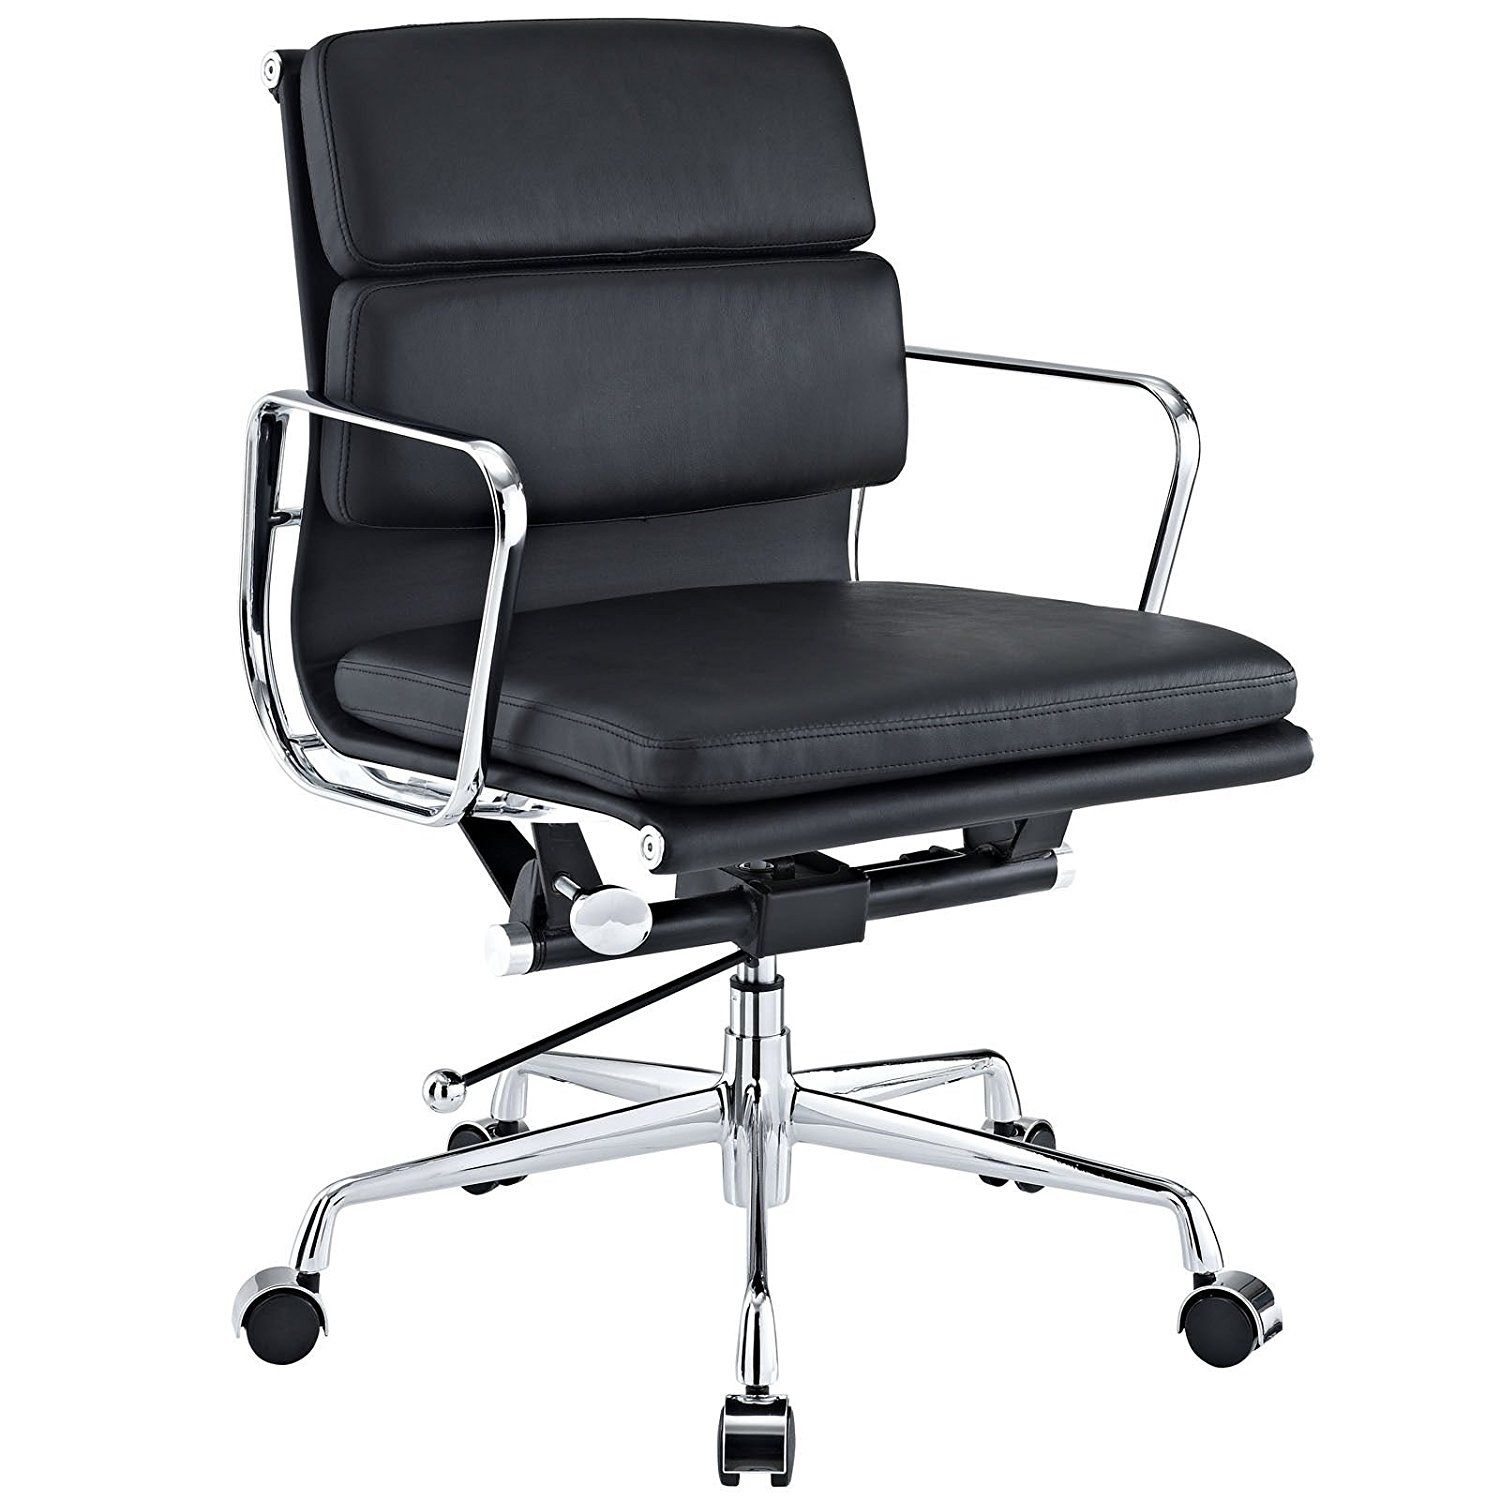 reproduction office chairs. Amazon.com: EMod - Eames Style Softpadded Management Office Chair Reproduction Leather Black: Chairs U